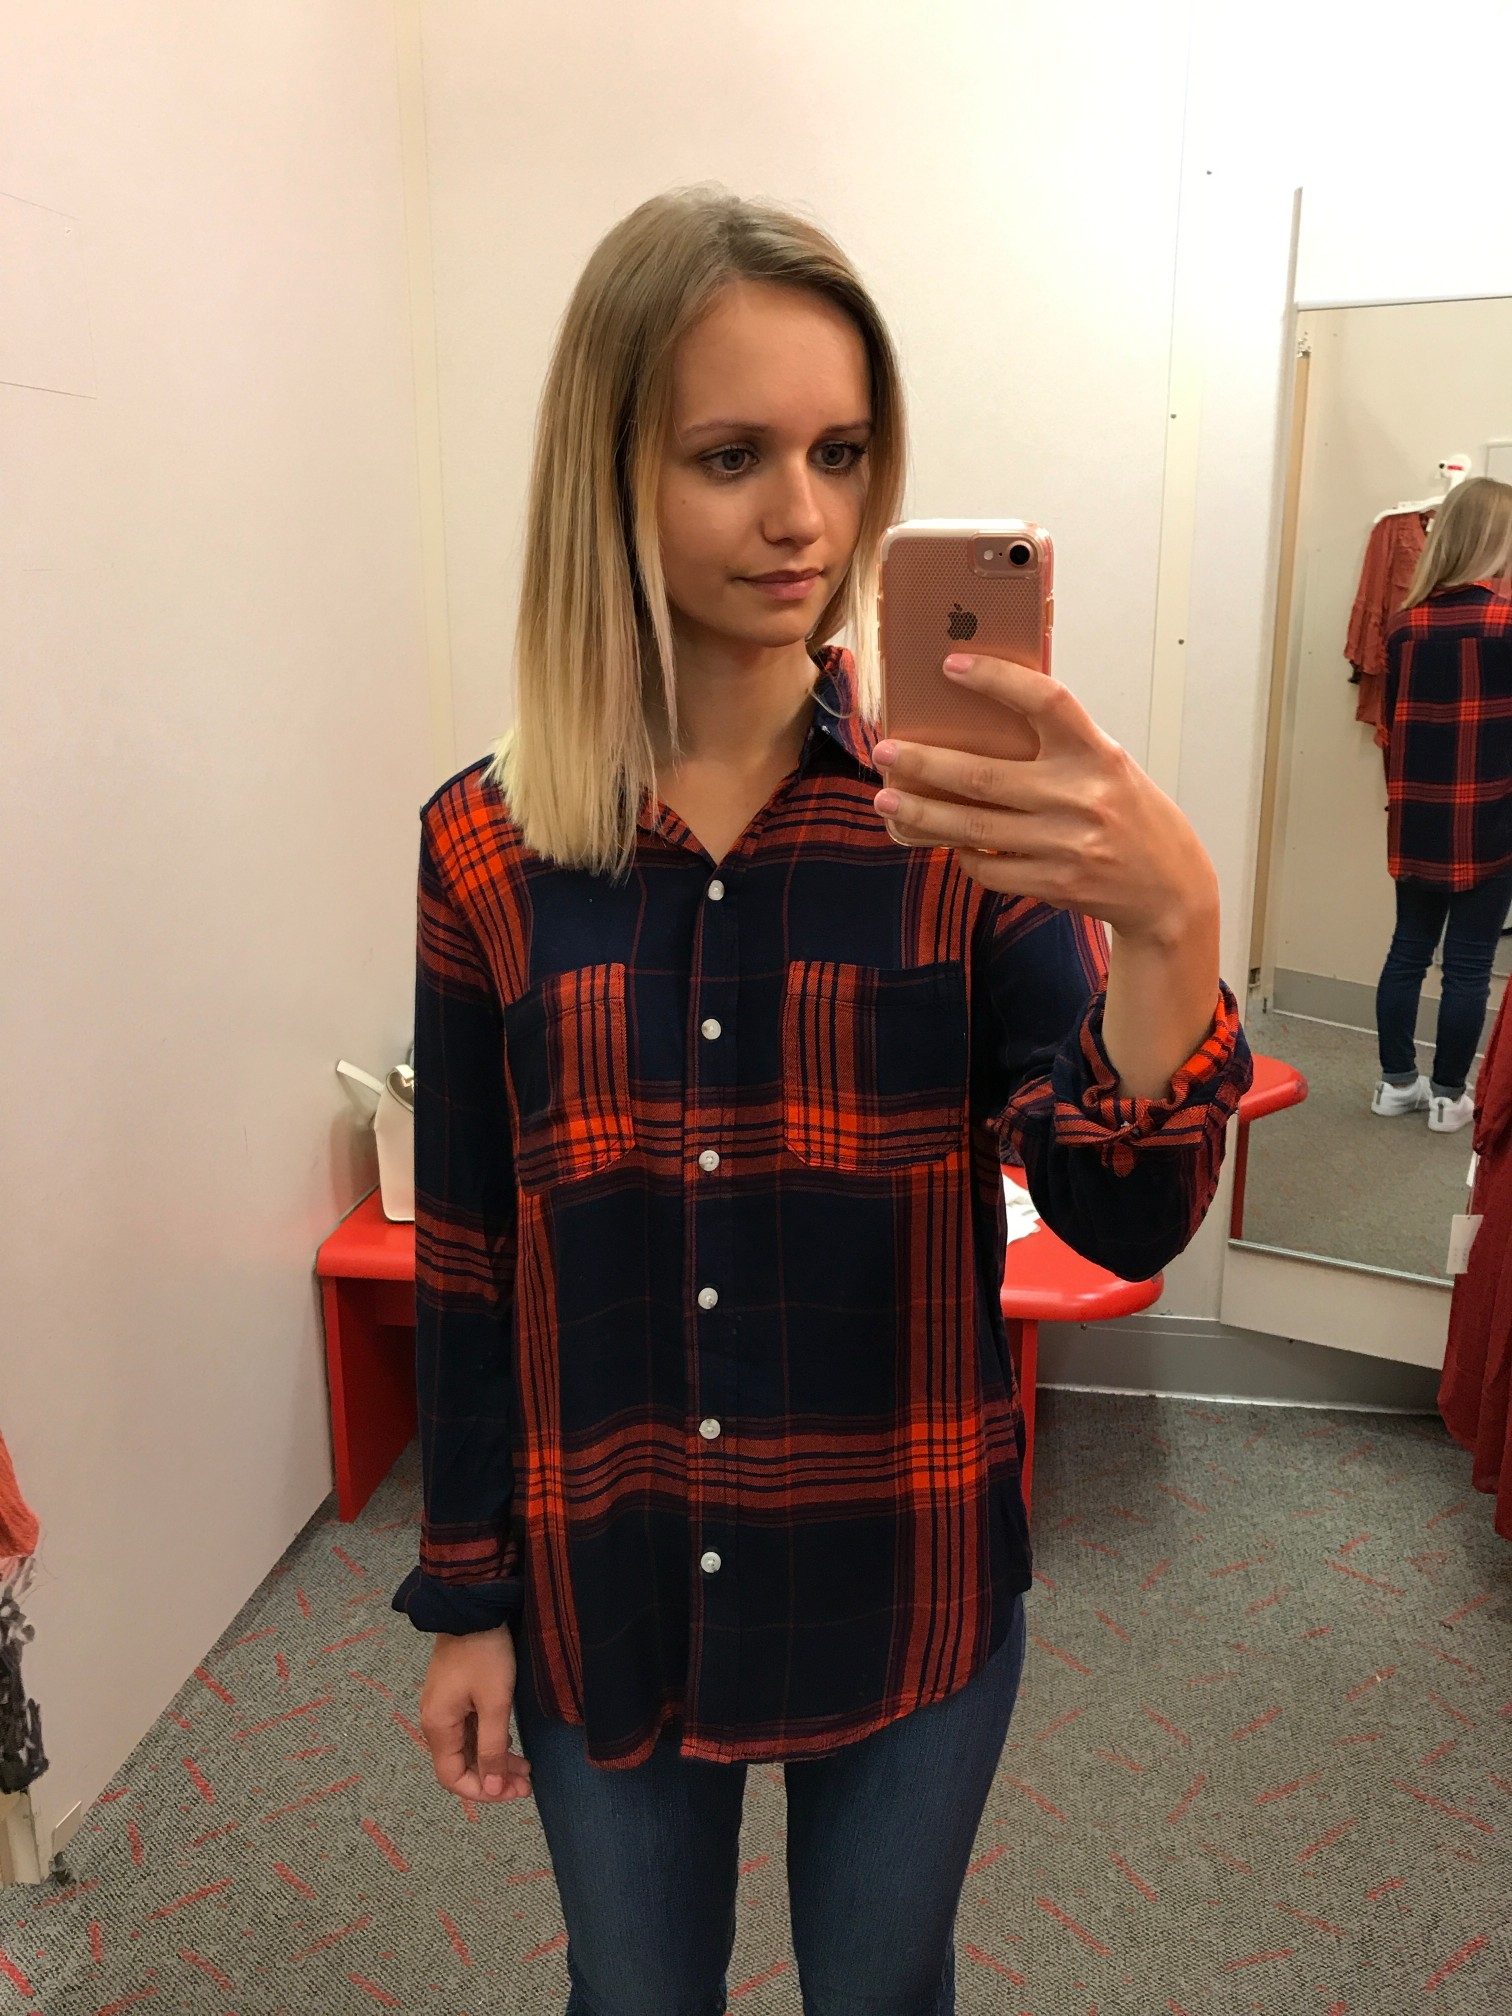 Target Mossimo Plaid Boyfriend Button Down Shirt fitting room adventures Little Things Olga connecticut style blog